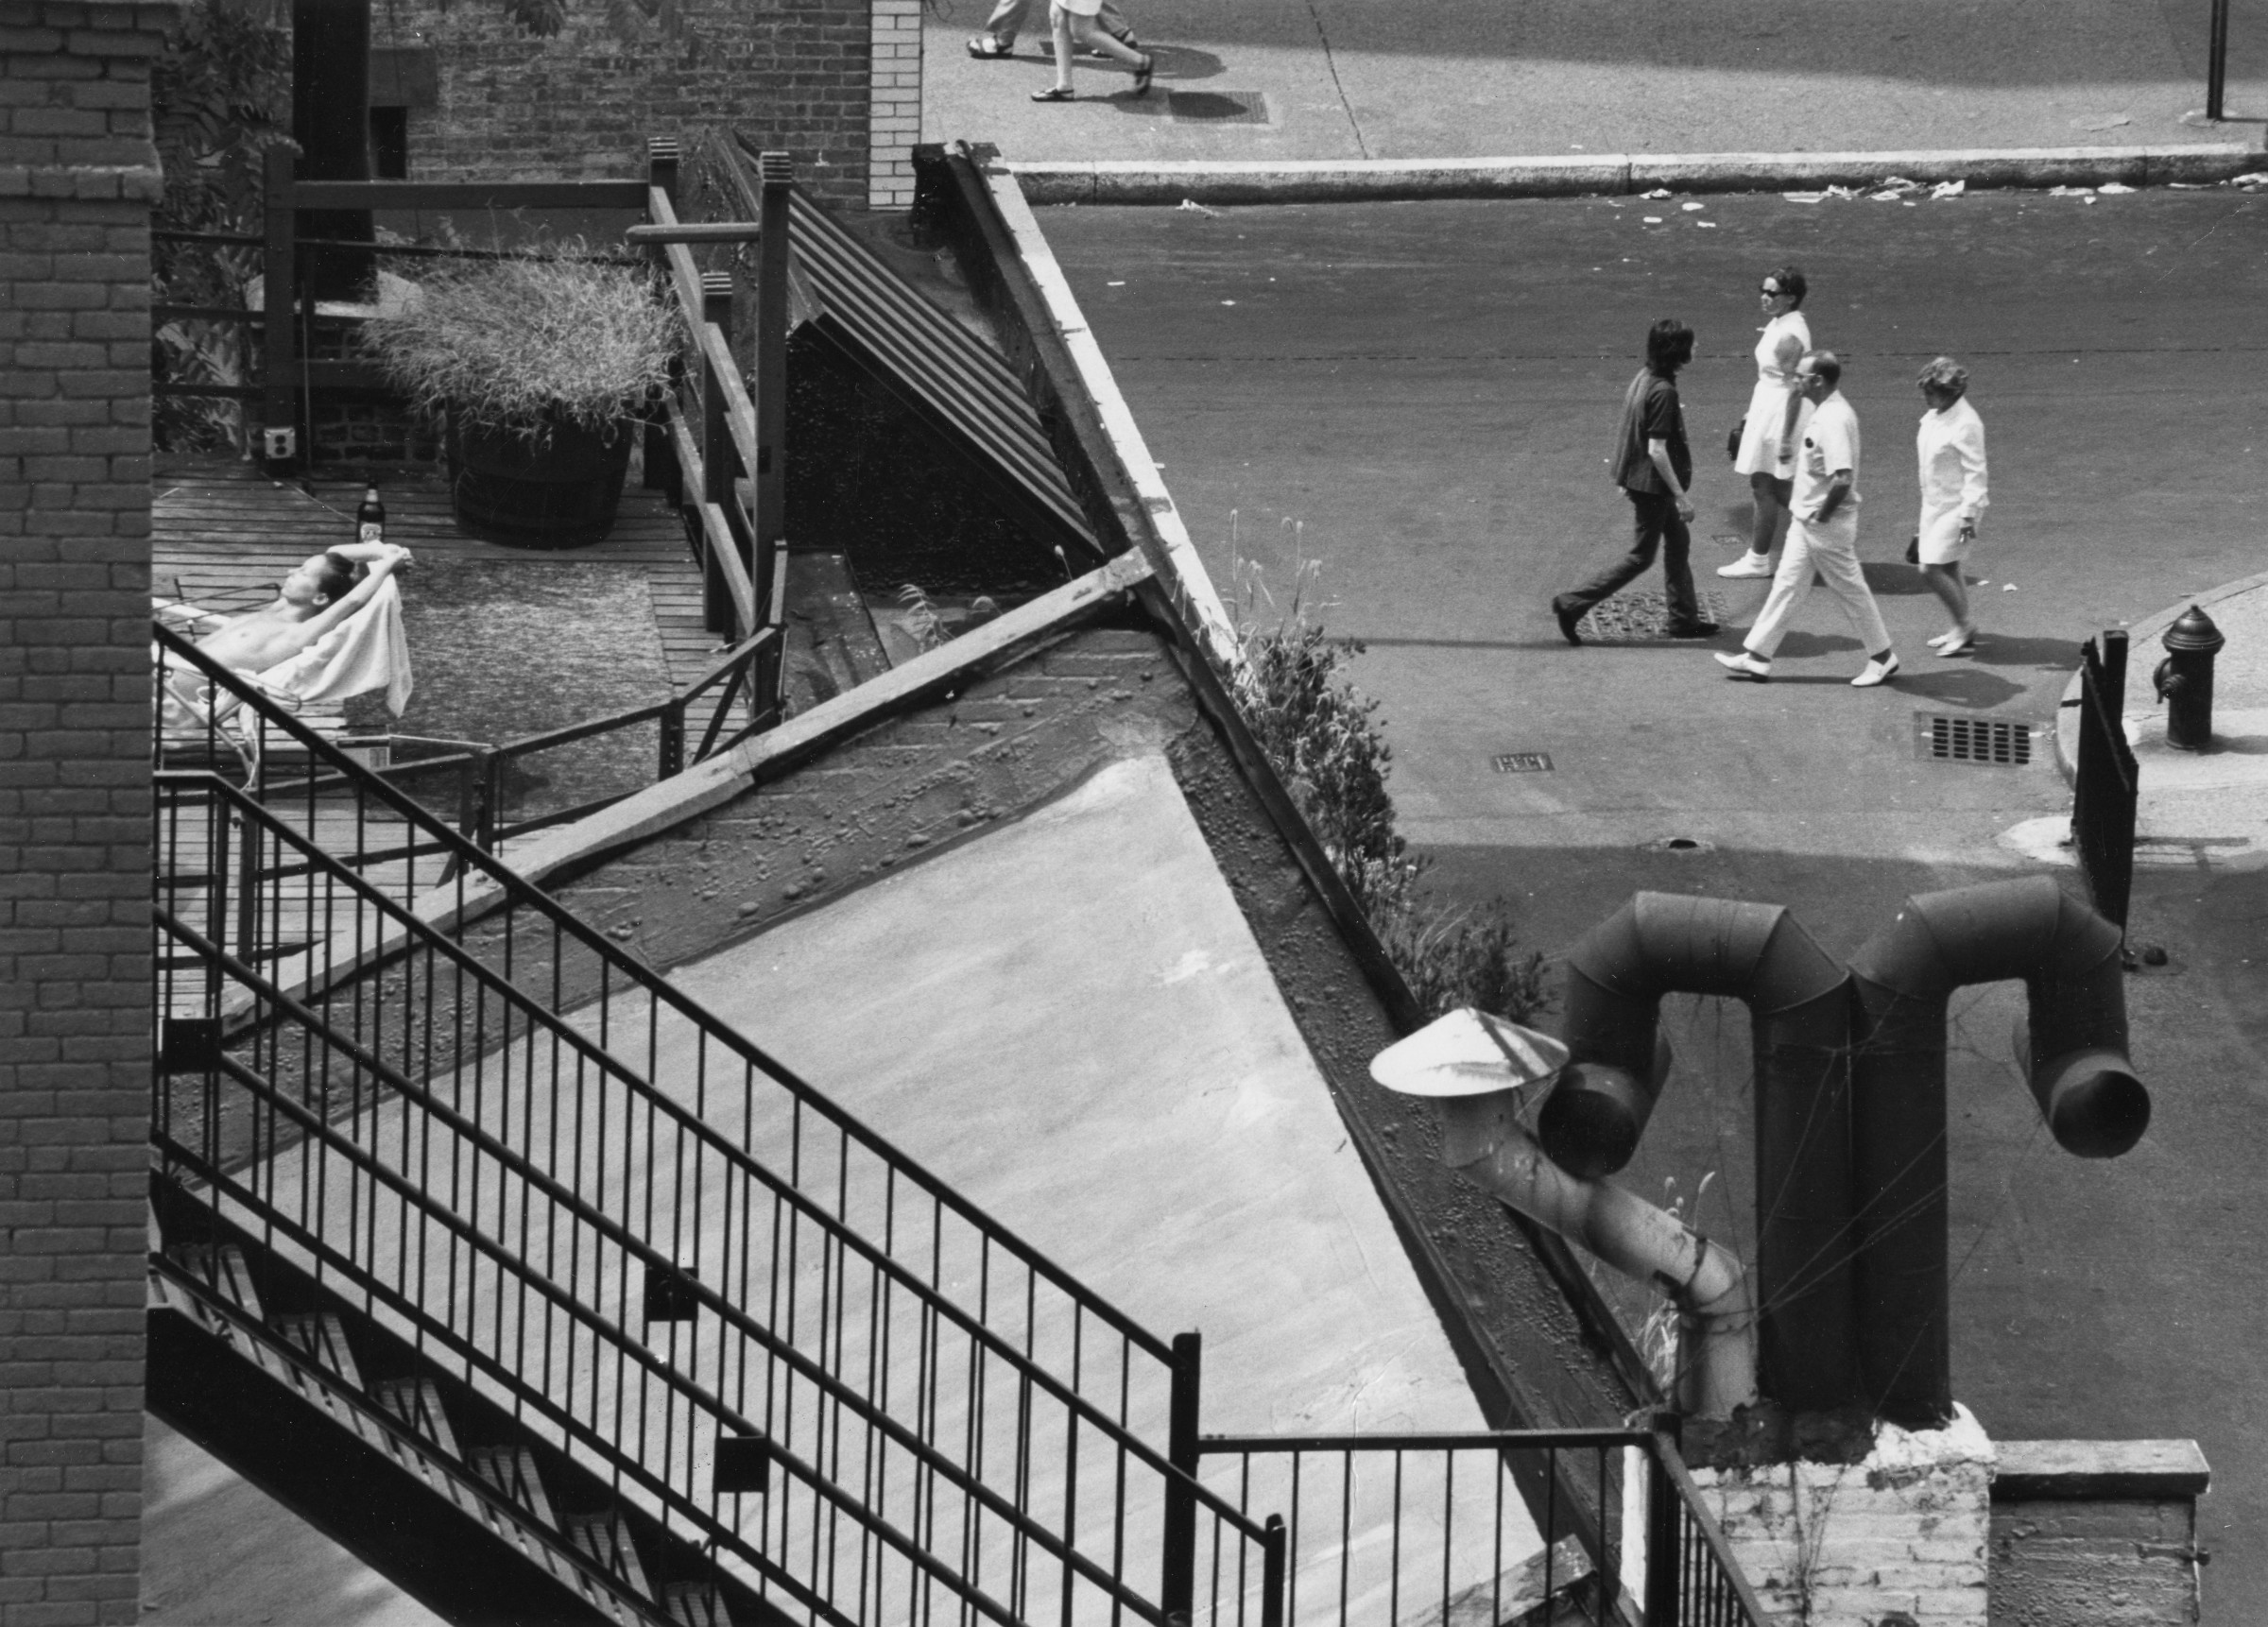 "<span class=""link fancybox-details-link""><a href=""/artists/47-andre-kertesz/works/20315-andre-kertesz-new-york-sunbather-on-roof-august-9-1969/"">View Detail Page</a></span><div class=""artist""><strong>André Kertész</strong></div> 1894-1985 <div class=""title""><em>New York [sunbather on roof]</em>, August 9, 1969</div> <div class=""signed_and_dated"">Titled and annotated ""Ouverture Arts Kertesz"",  in pencil, dated, in pencil and ink; Paris Scope stamp and artist stamp, in ink, au verso<br /> Estate #6-1603-001-2-1-32 E<br /> Printed in 1969<br /> Provenance: Direct from the Estate of André Kertész, New York</div> <div class=""medium"">Gelatin silver print</div> <div class=""dimensions"">7 x 9 ½ inch (17.78 x 24.13 cm) image<br /> 8 x 10 inch (20.32 x 25.40 cm) paper</div> <div class=""edition_details""></div><div class=""copyright_line"">© The Estate of André Kertész</div>"